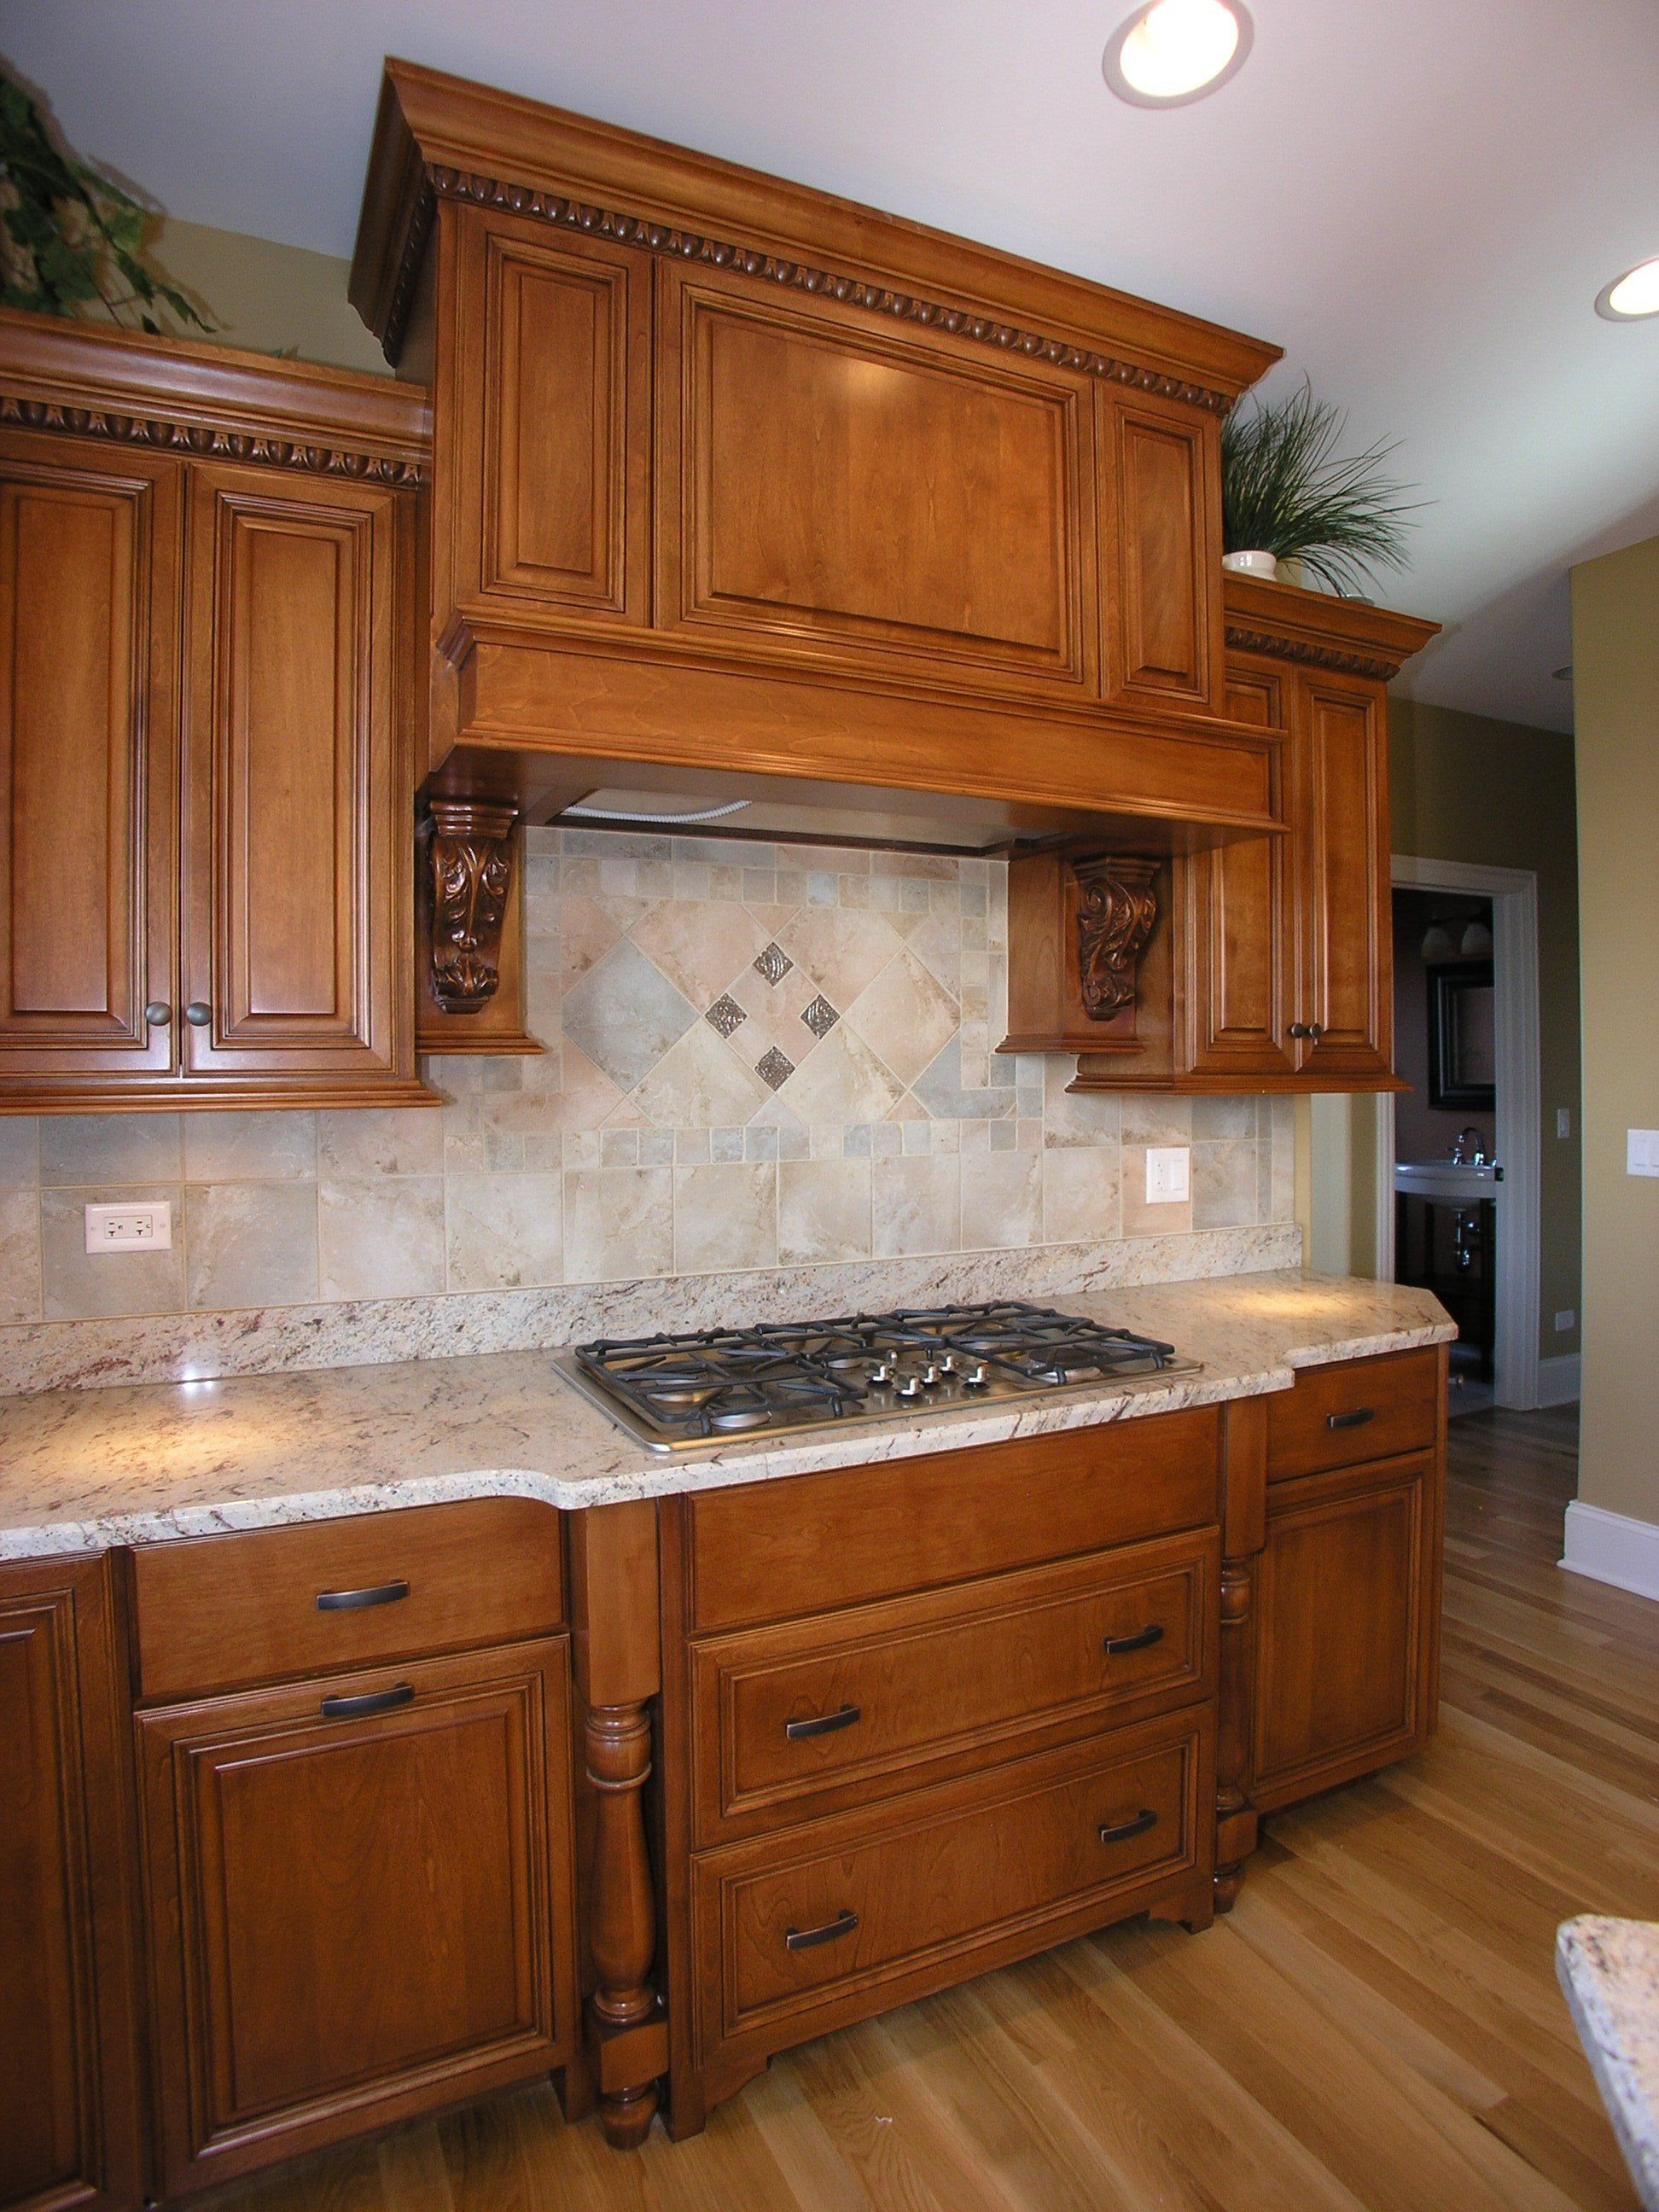 Custom cabinets, tile backsplash and gas cooktop adorn this beauty ...